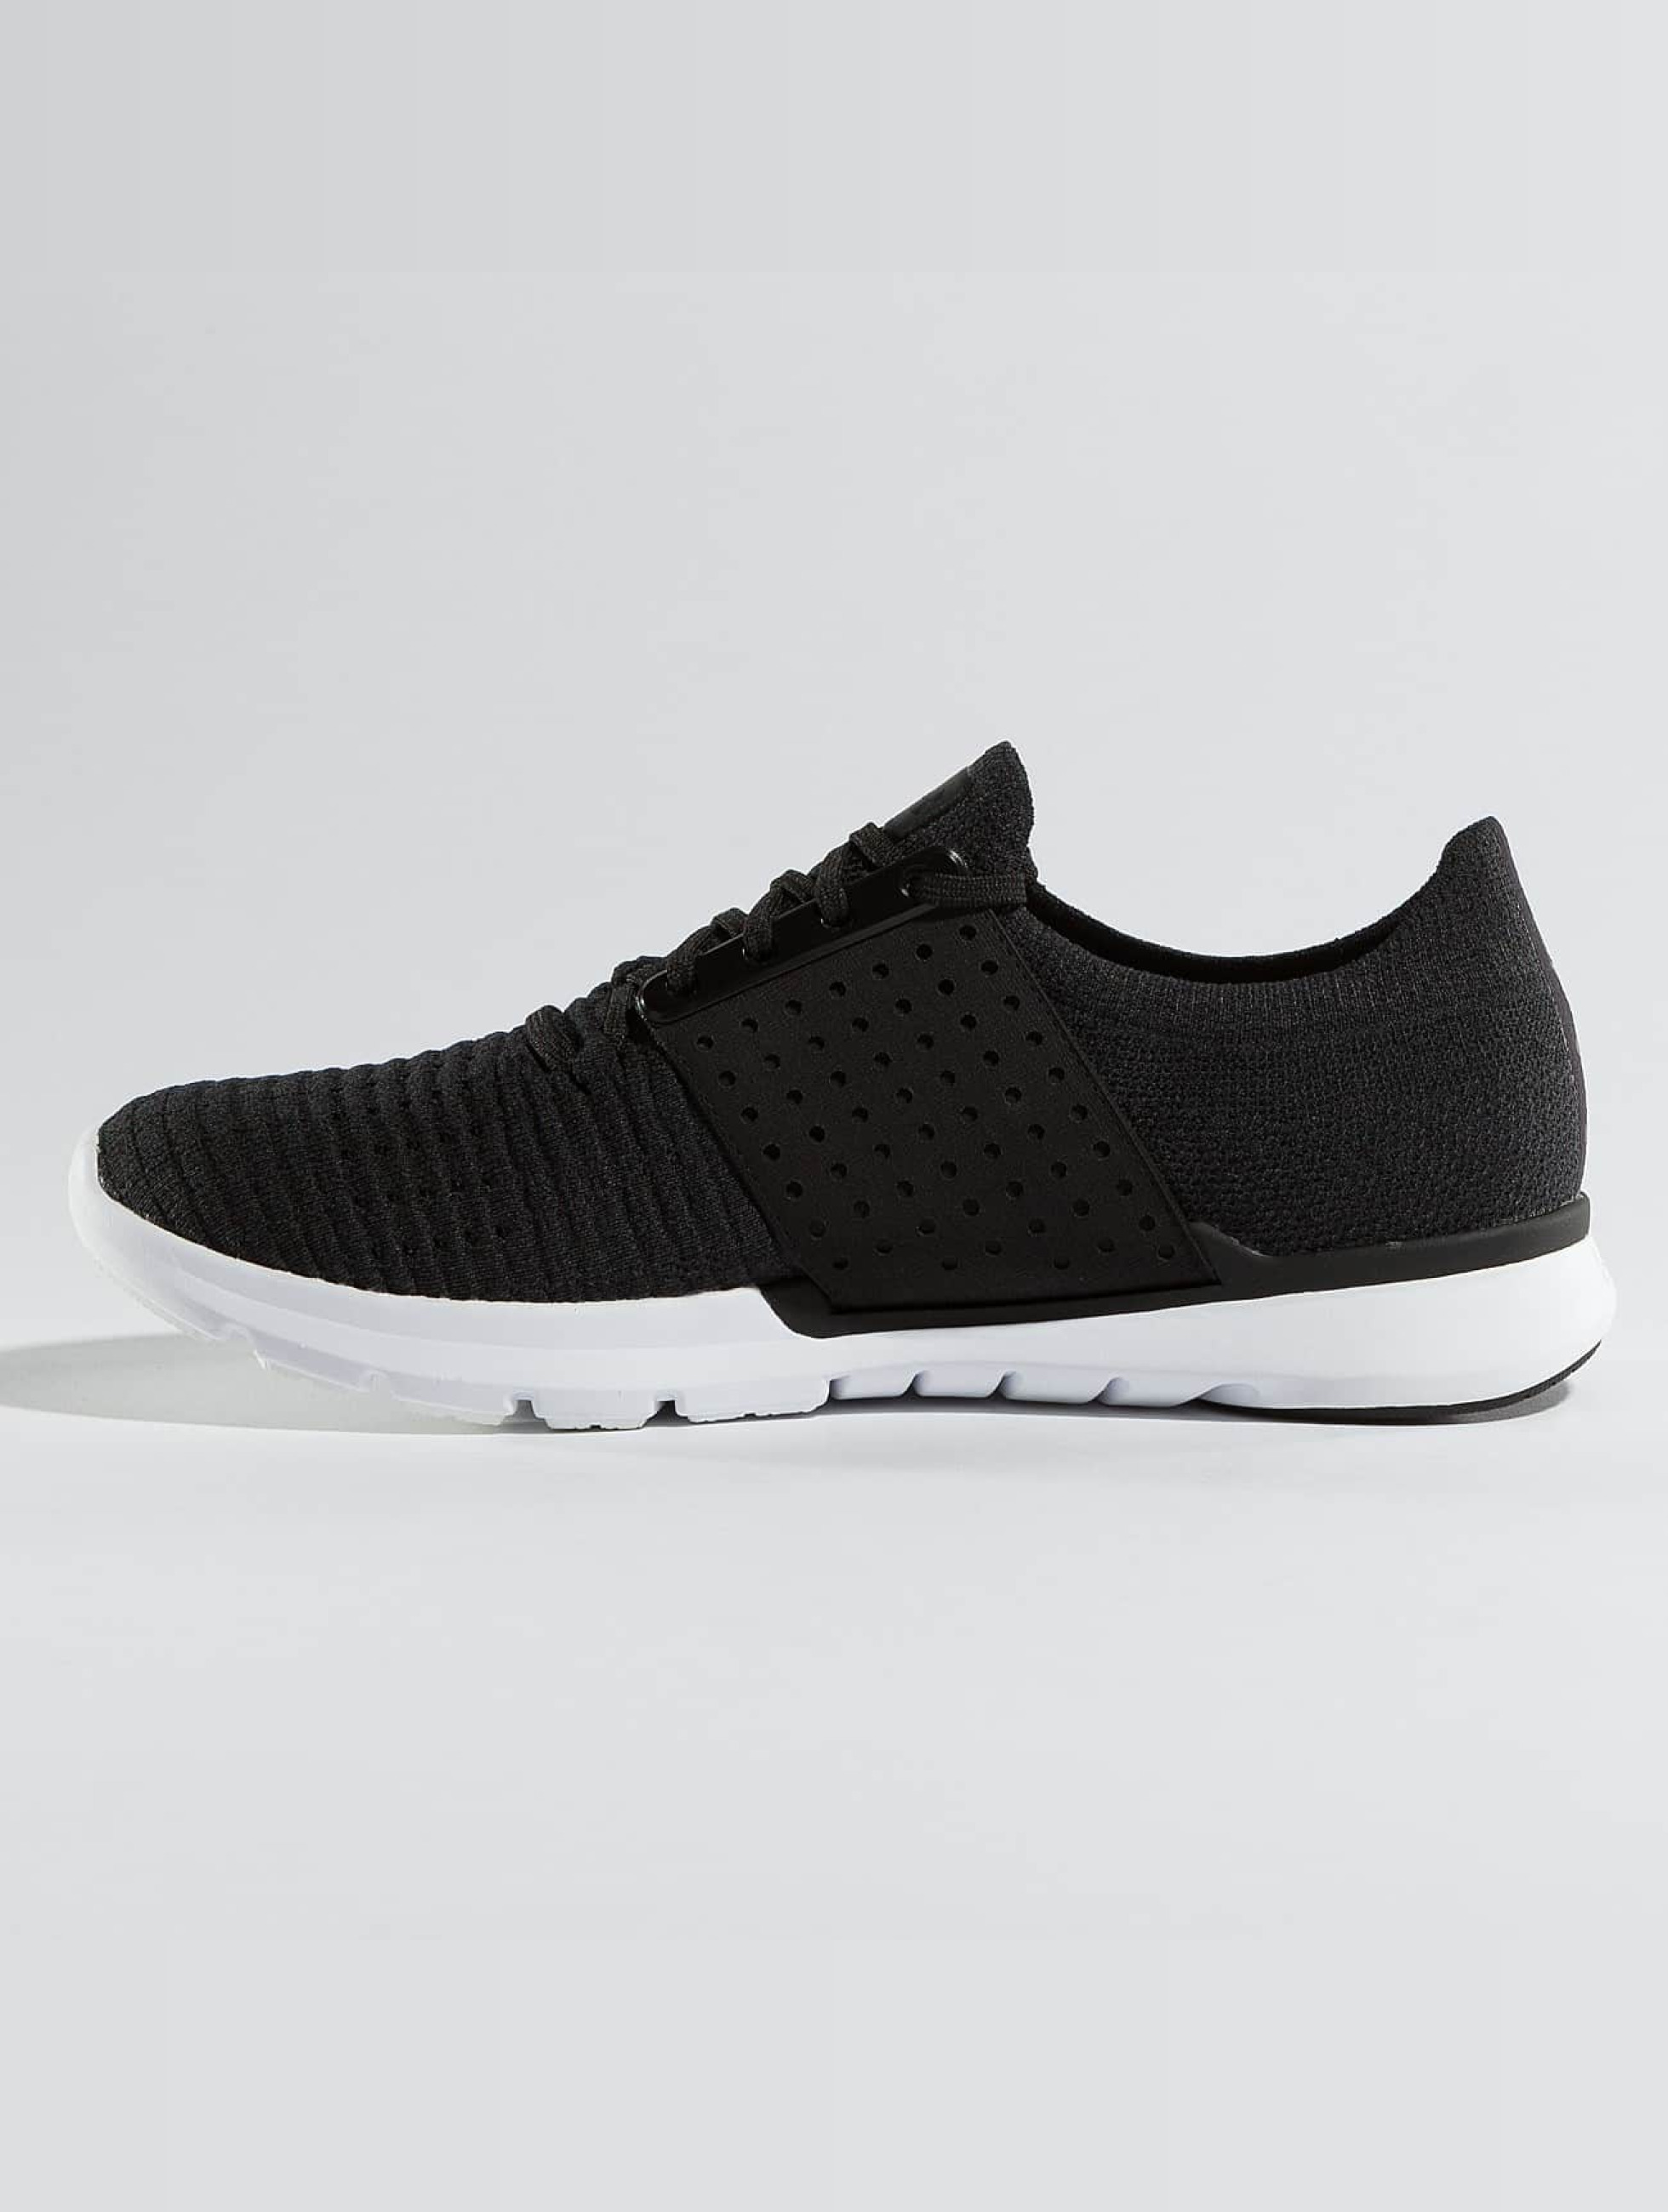 196c69e6a283f9 ... Under Armour Homme Chaussures / Baskets Baskets Baskets Speedform  Slingwrap | Outlet c434e8 ...